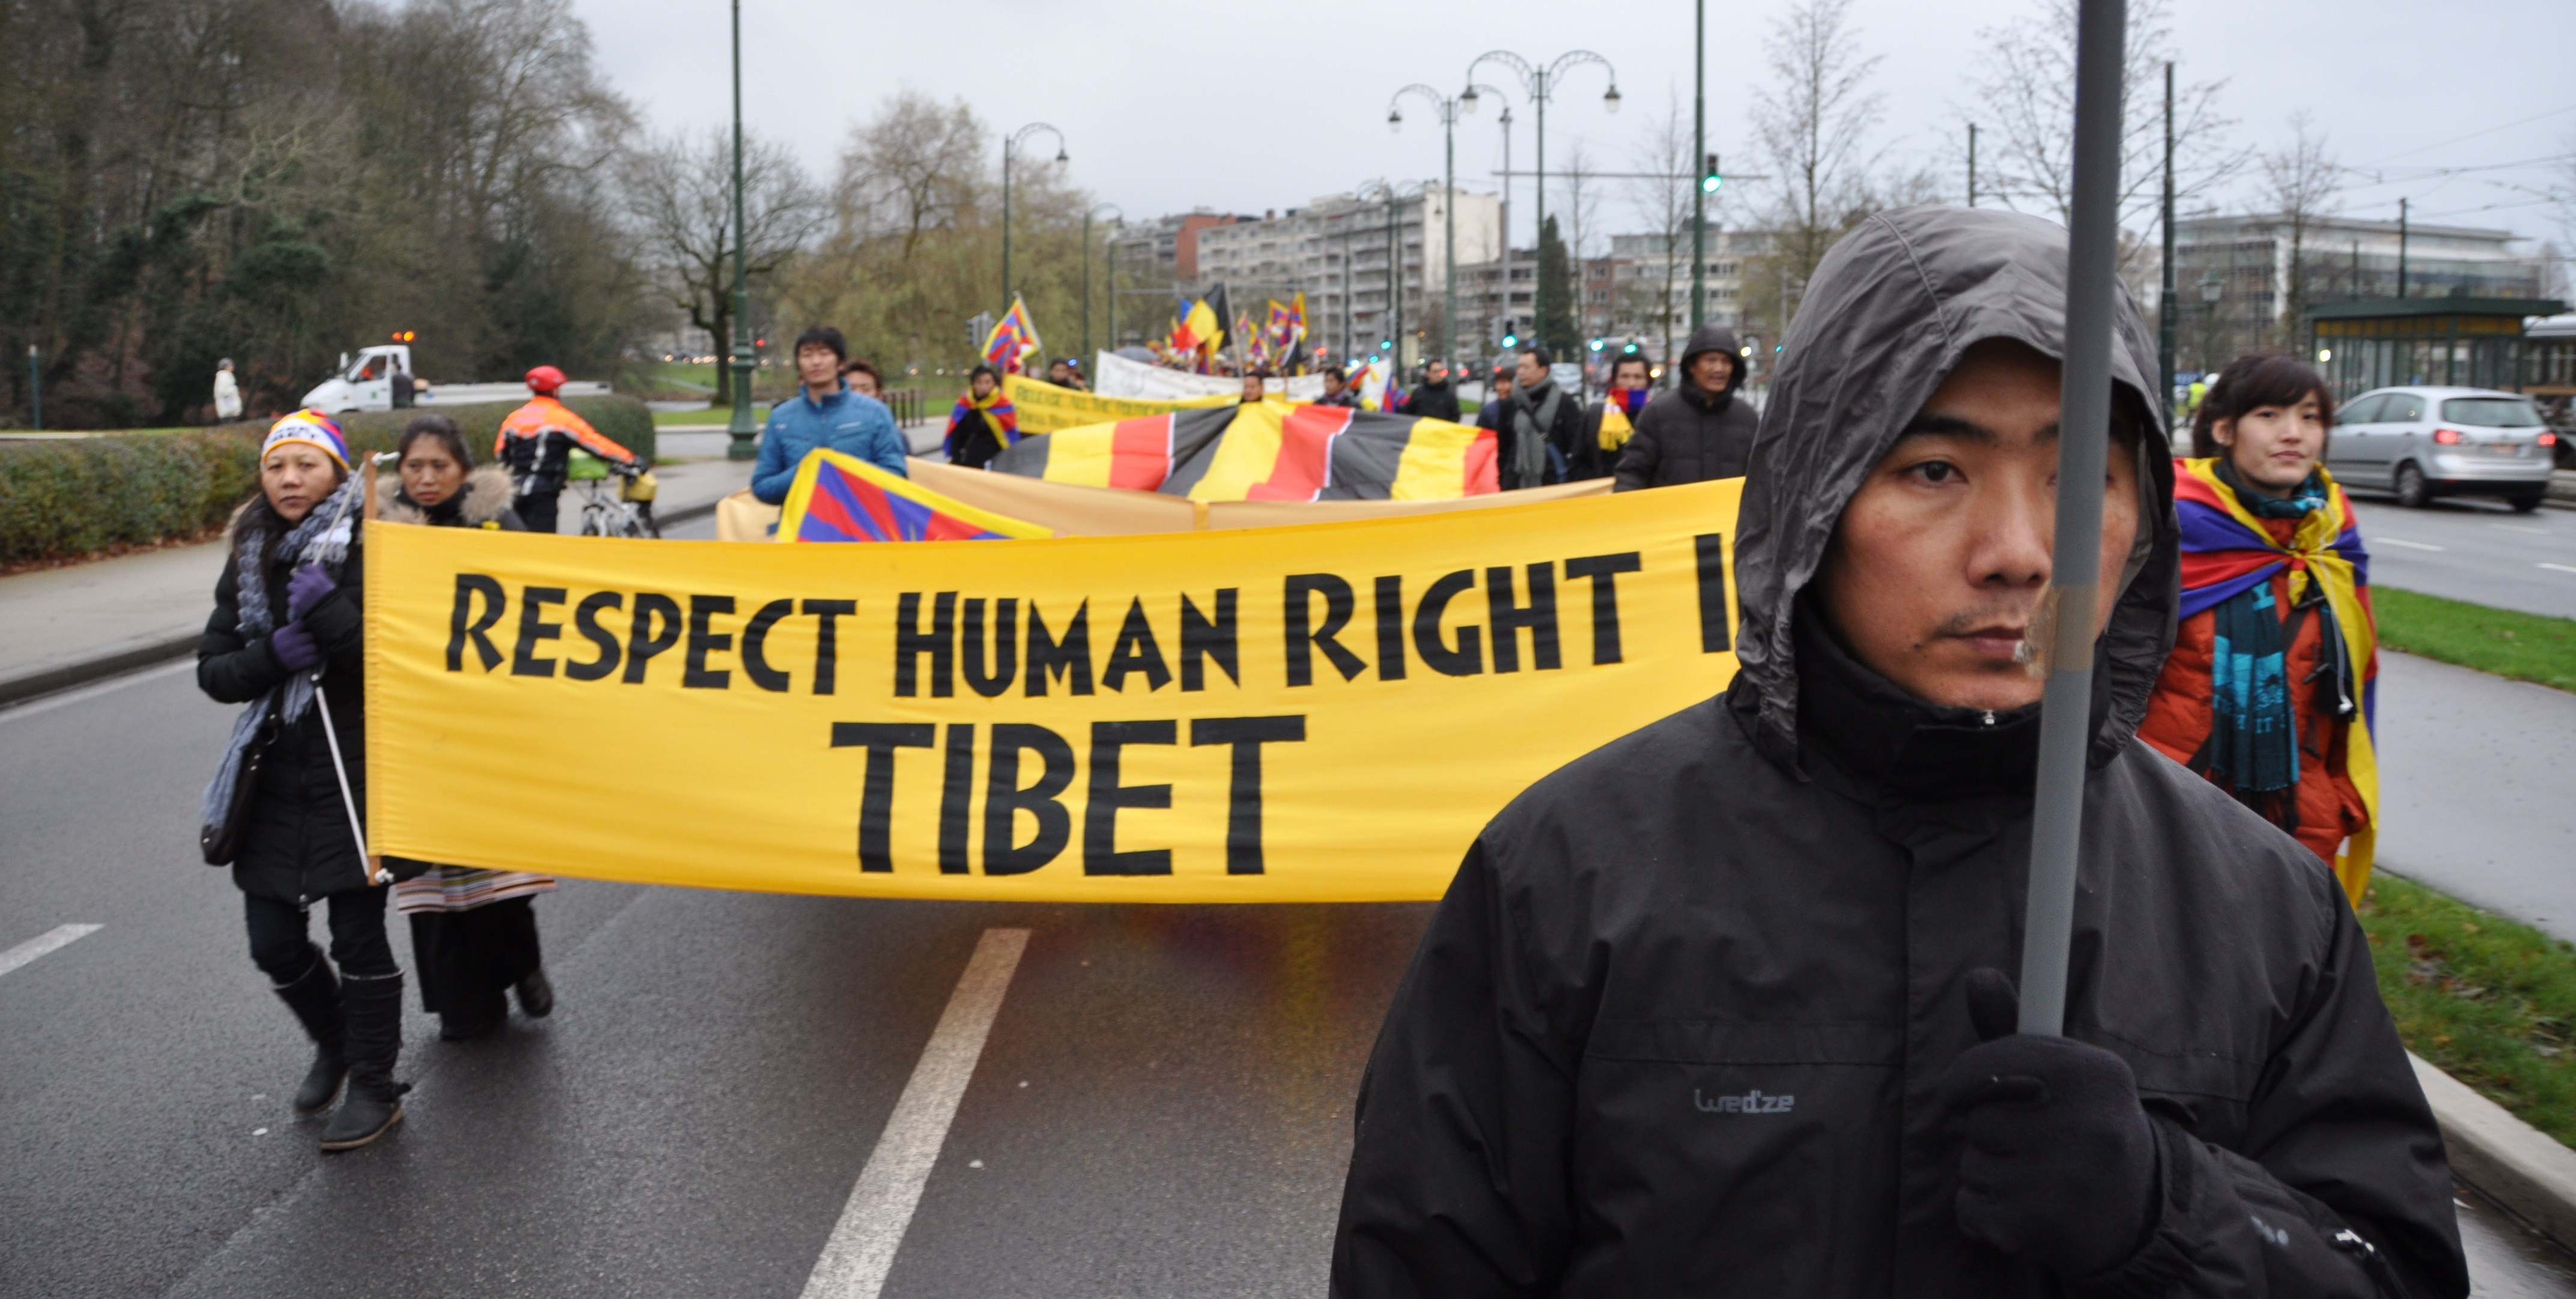 Respect human rights in tibet